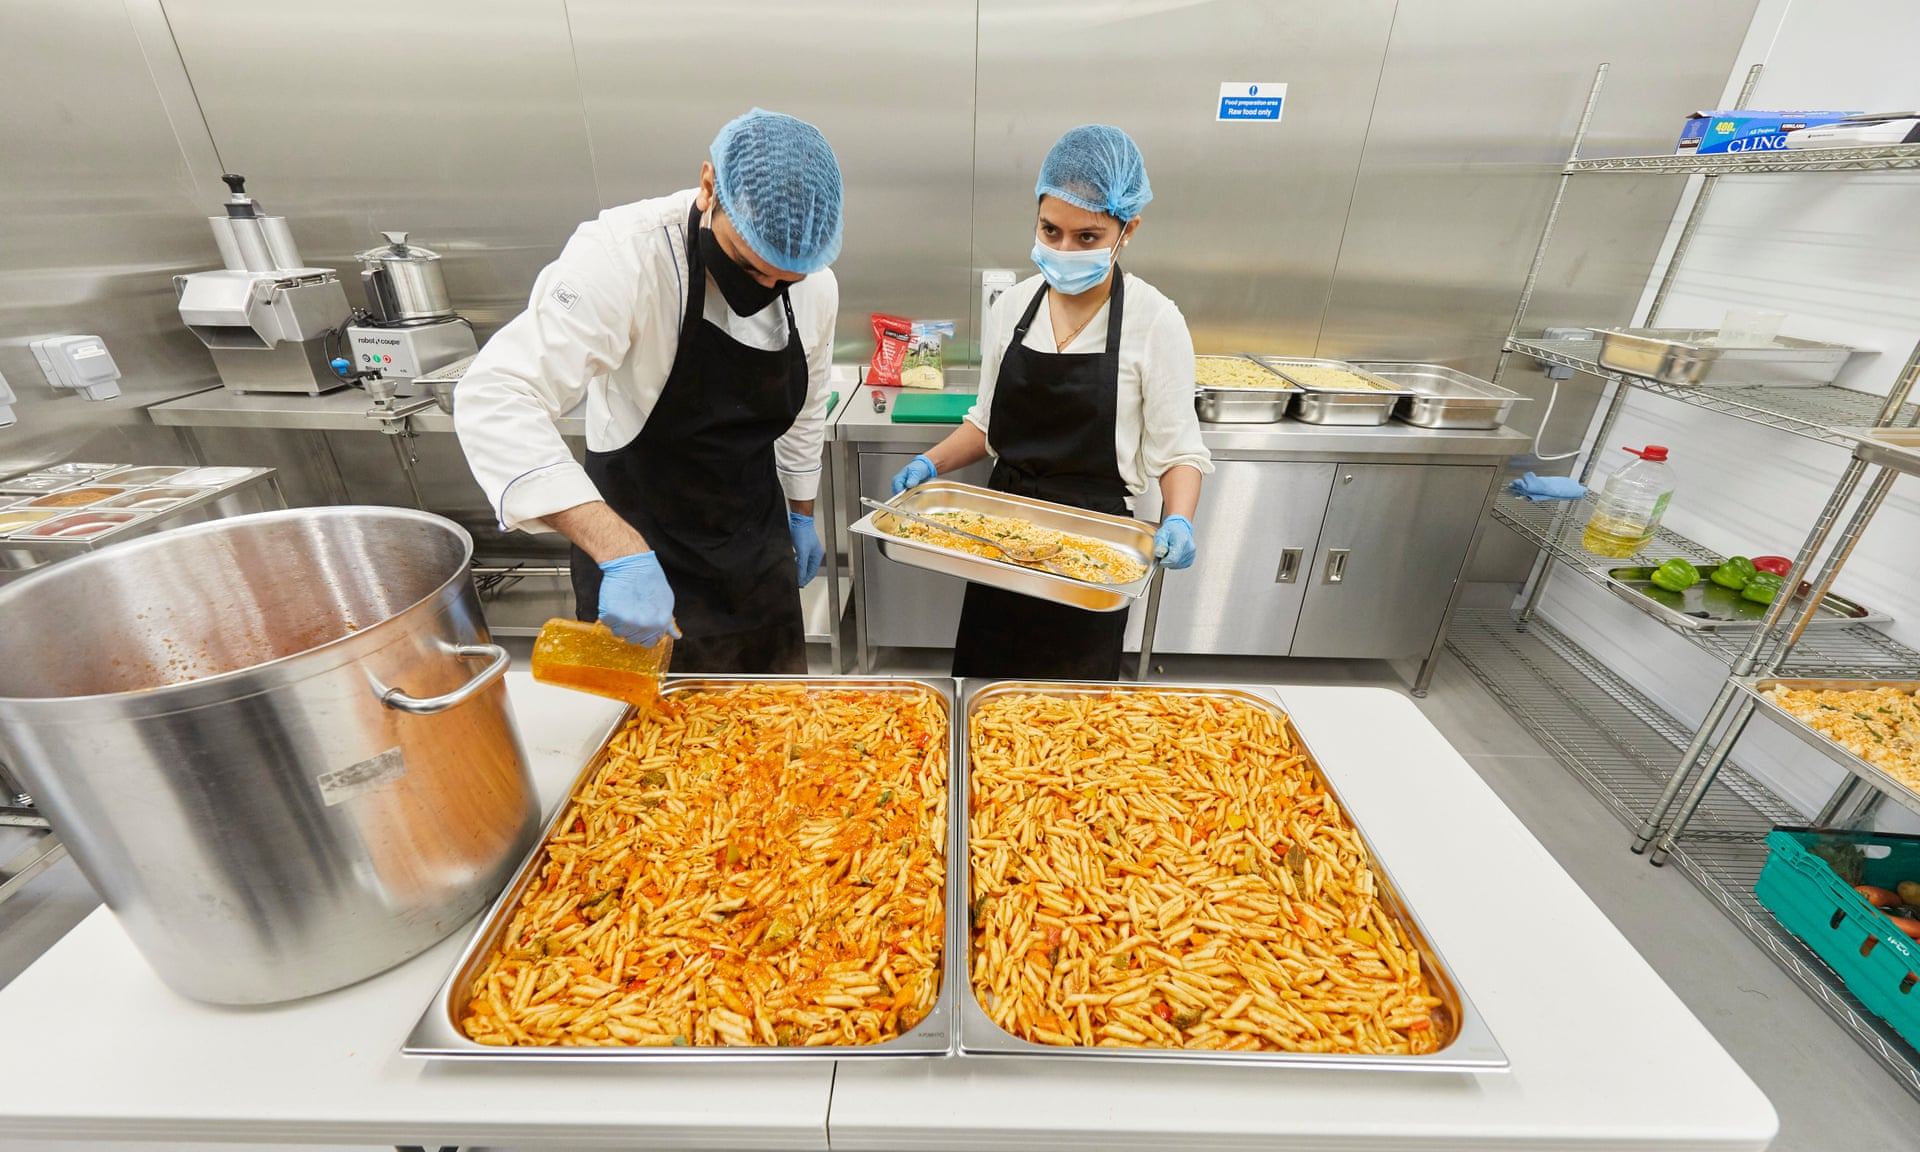 Meals being prepared at Akshaya Patra's kitchen in Watford. Photograph: David Levene/The Guardian